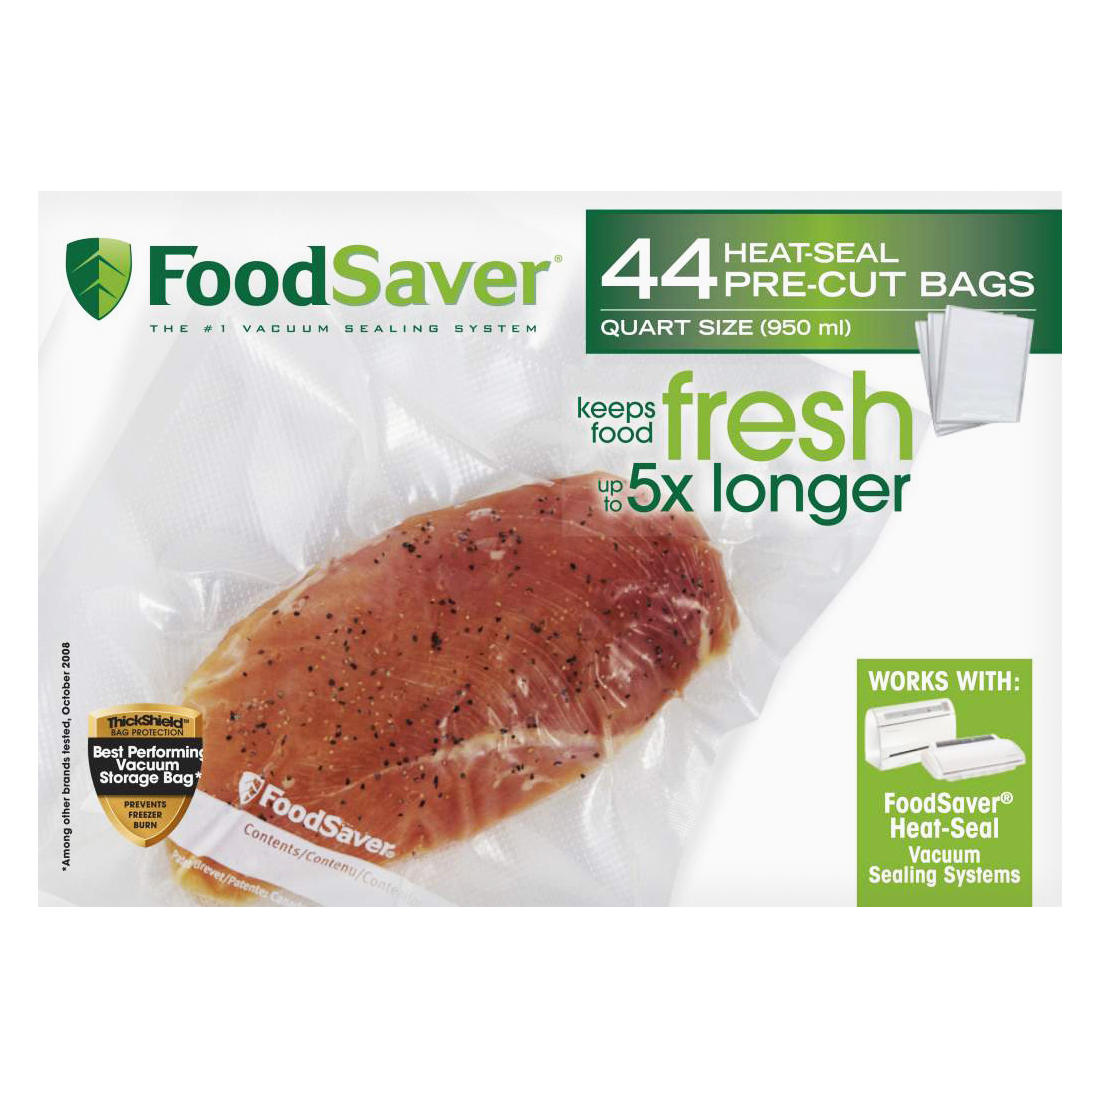 Foodsaver Quart Size Vacuum Storage Bags 44 Ct Bjs Wholesale Club